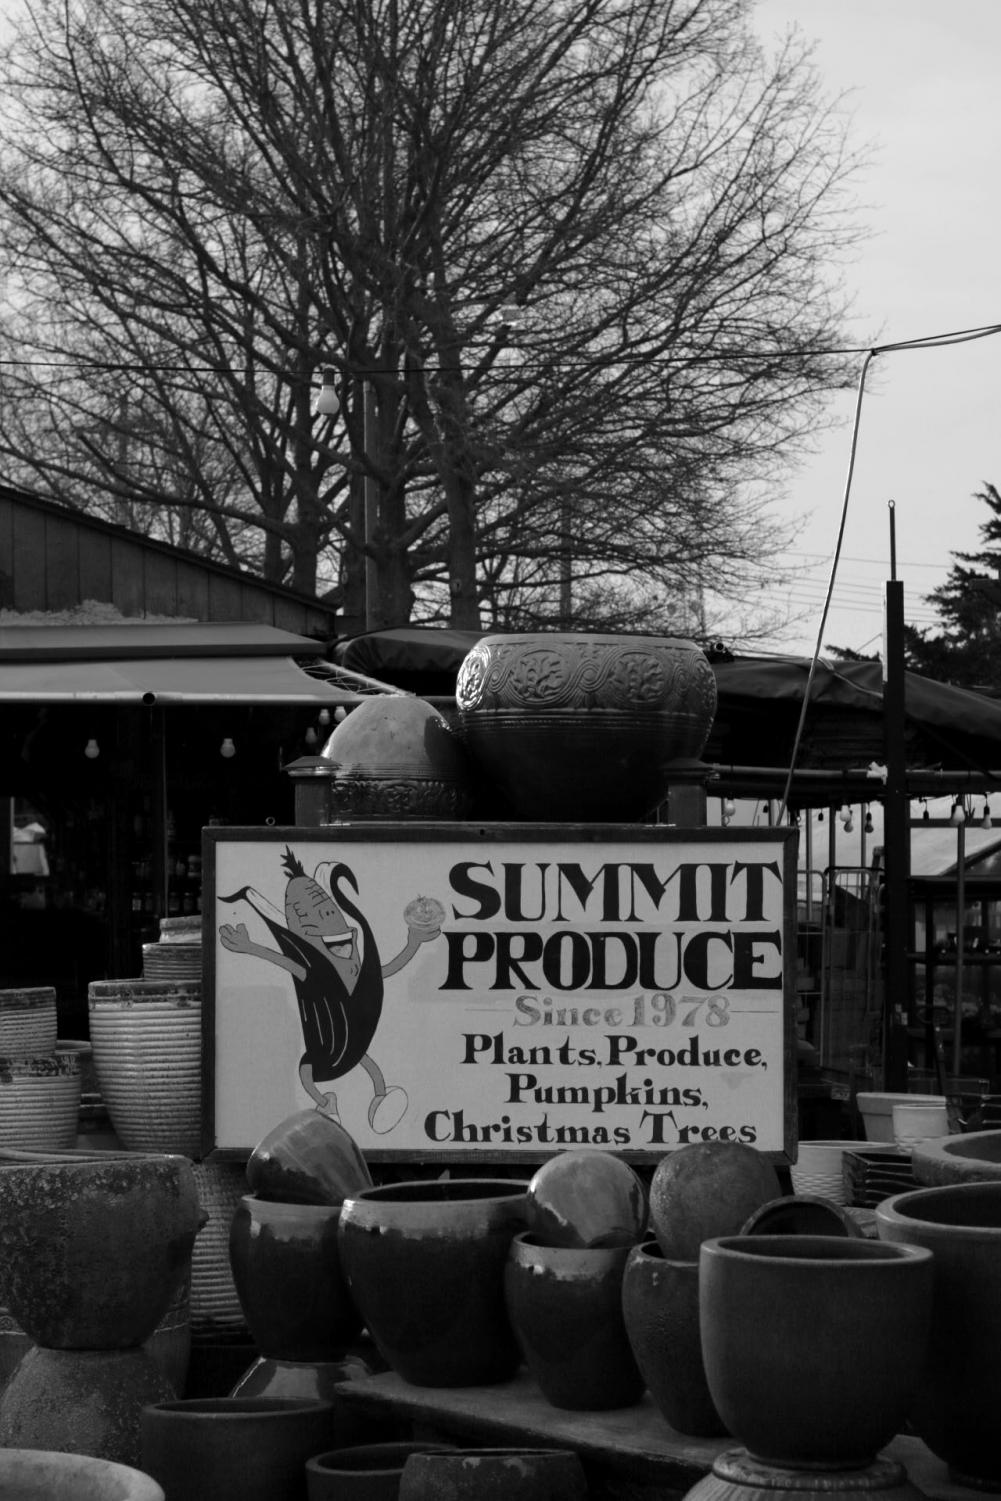 The+Summit+Produce+Kirkwood+Farmers+Market++opened+for+the+season+May+30th.+